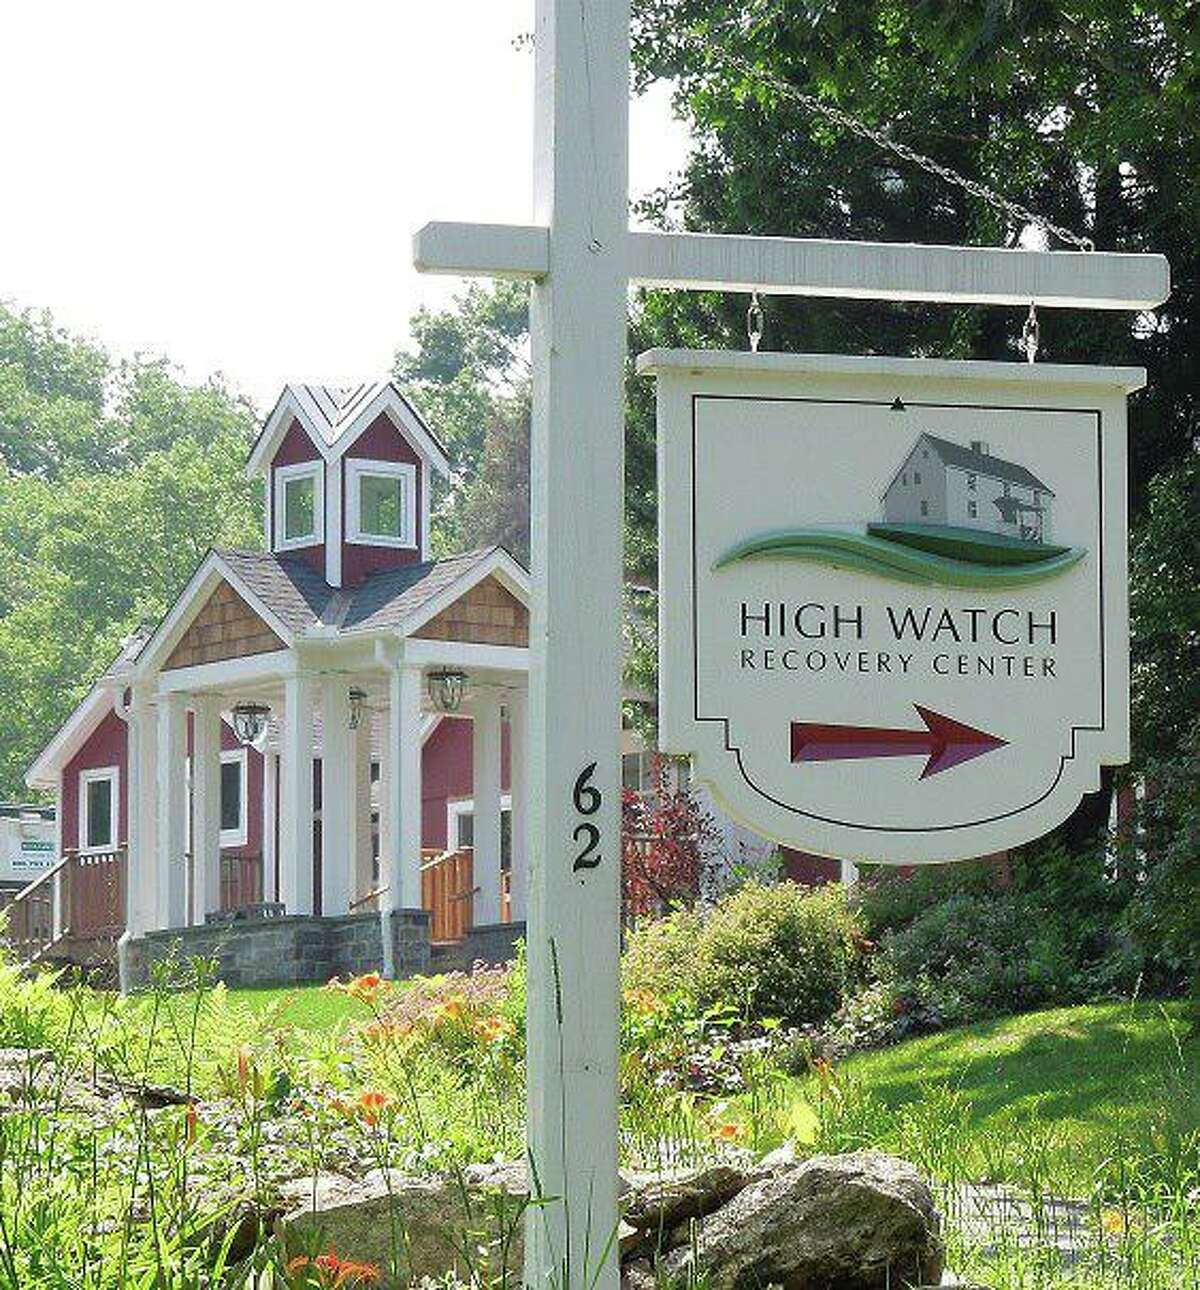 High Watch Recovery Center in Kent.